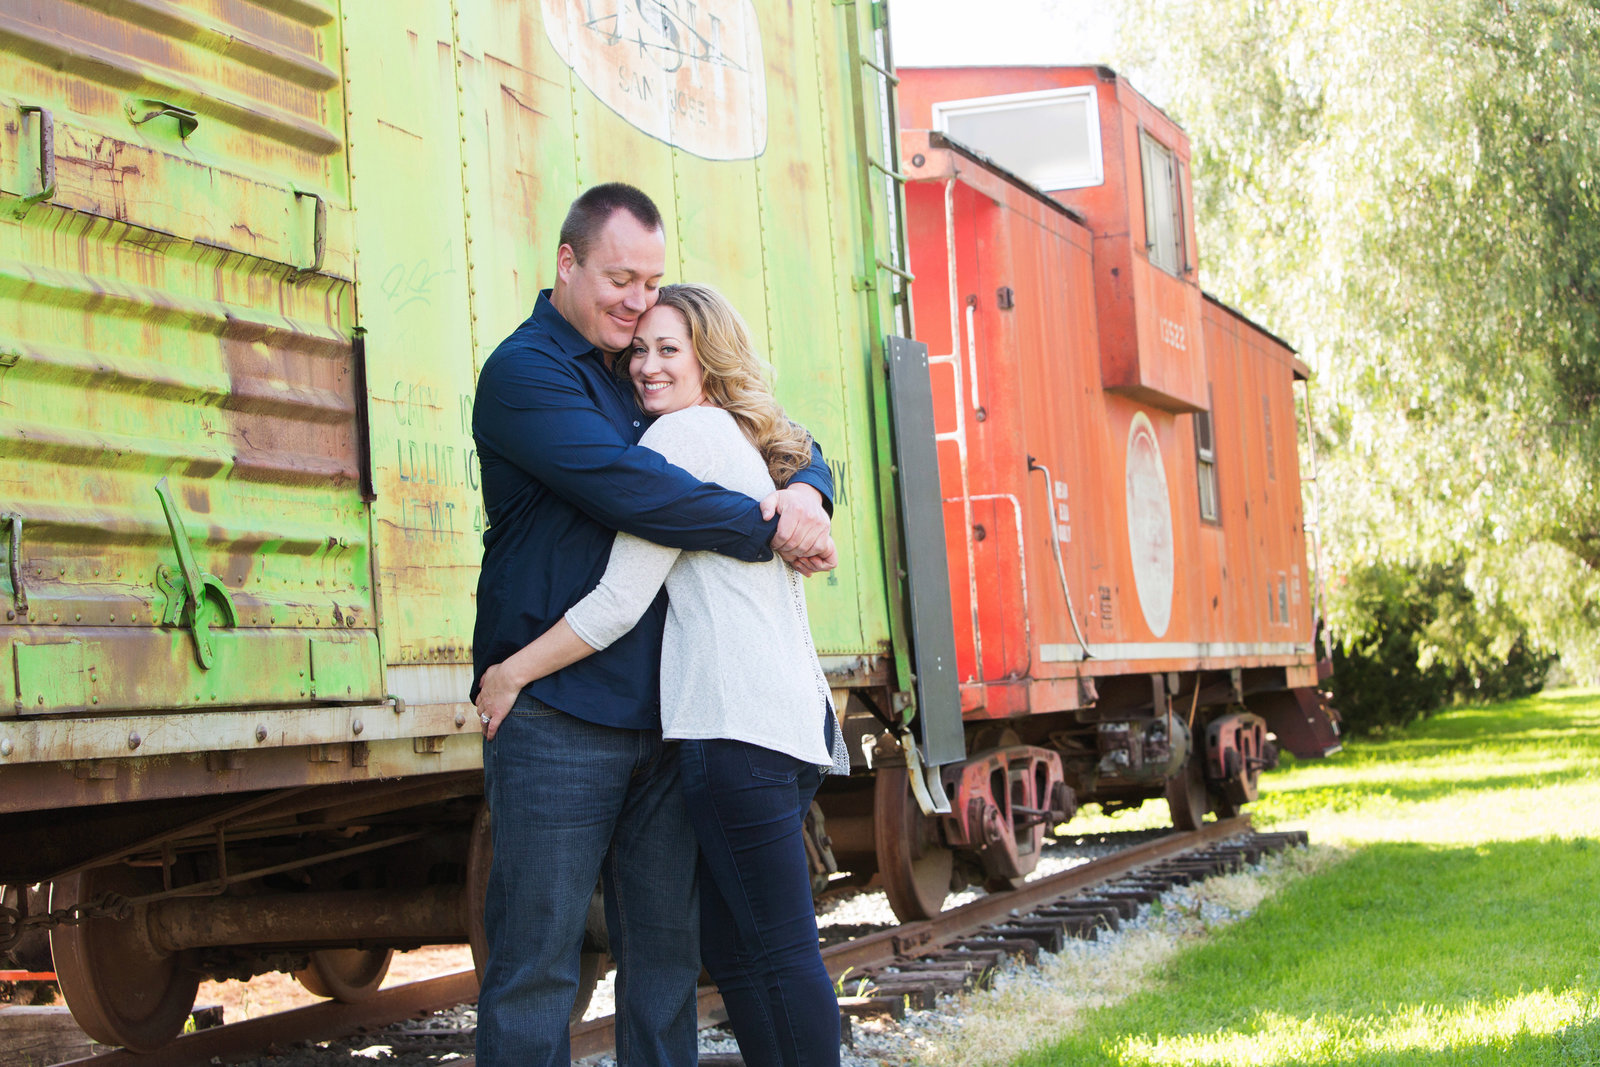 San Jose History Park, Engaged, Engagement Pictures, Jennifer Baciocco Photography, train